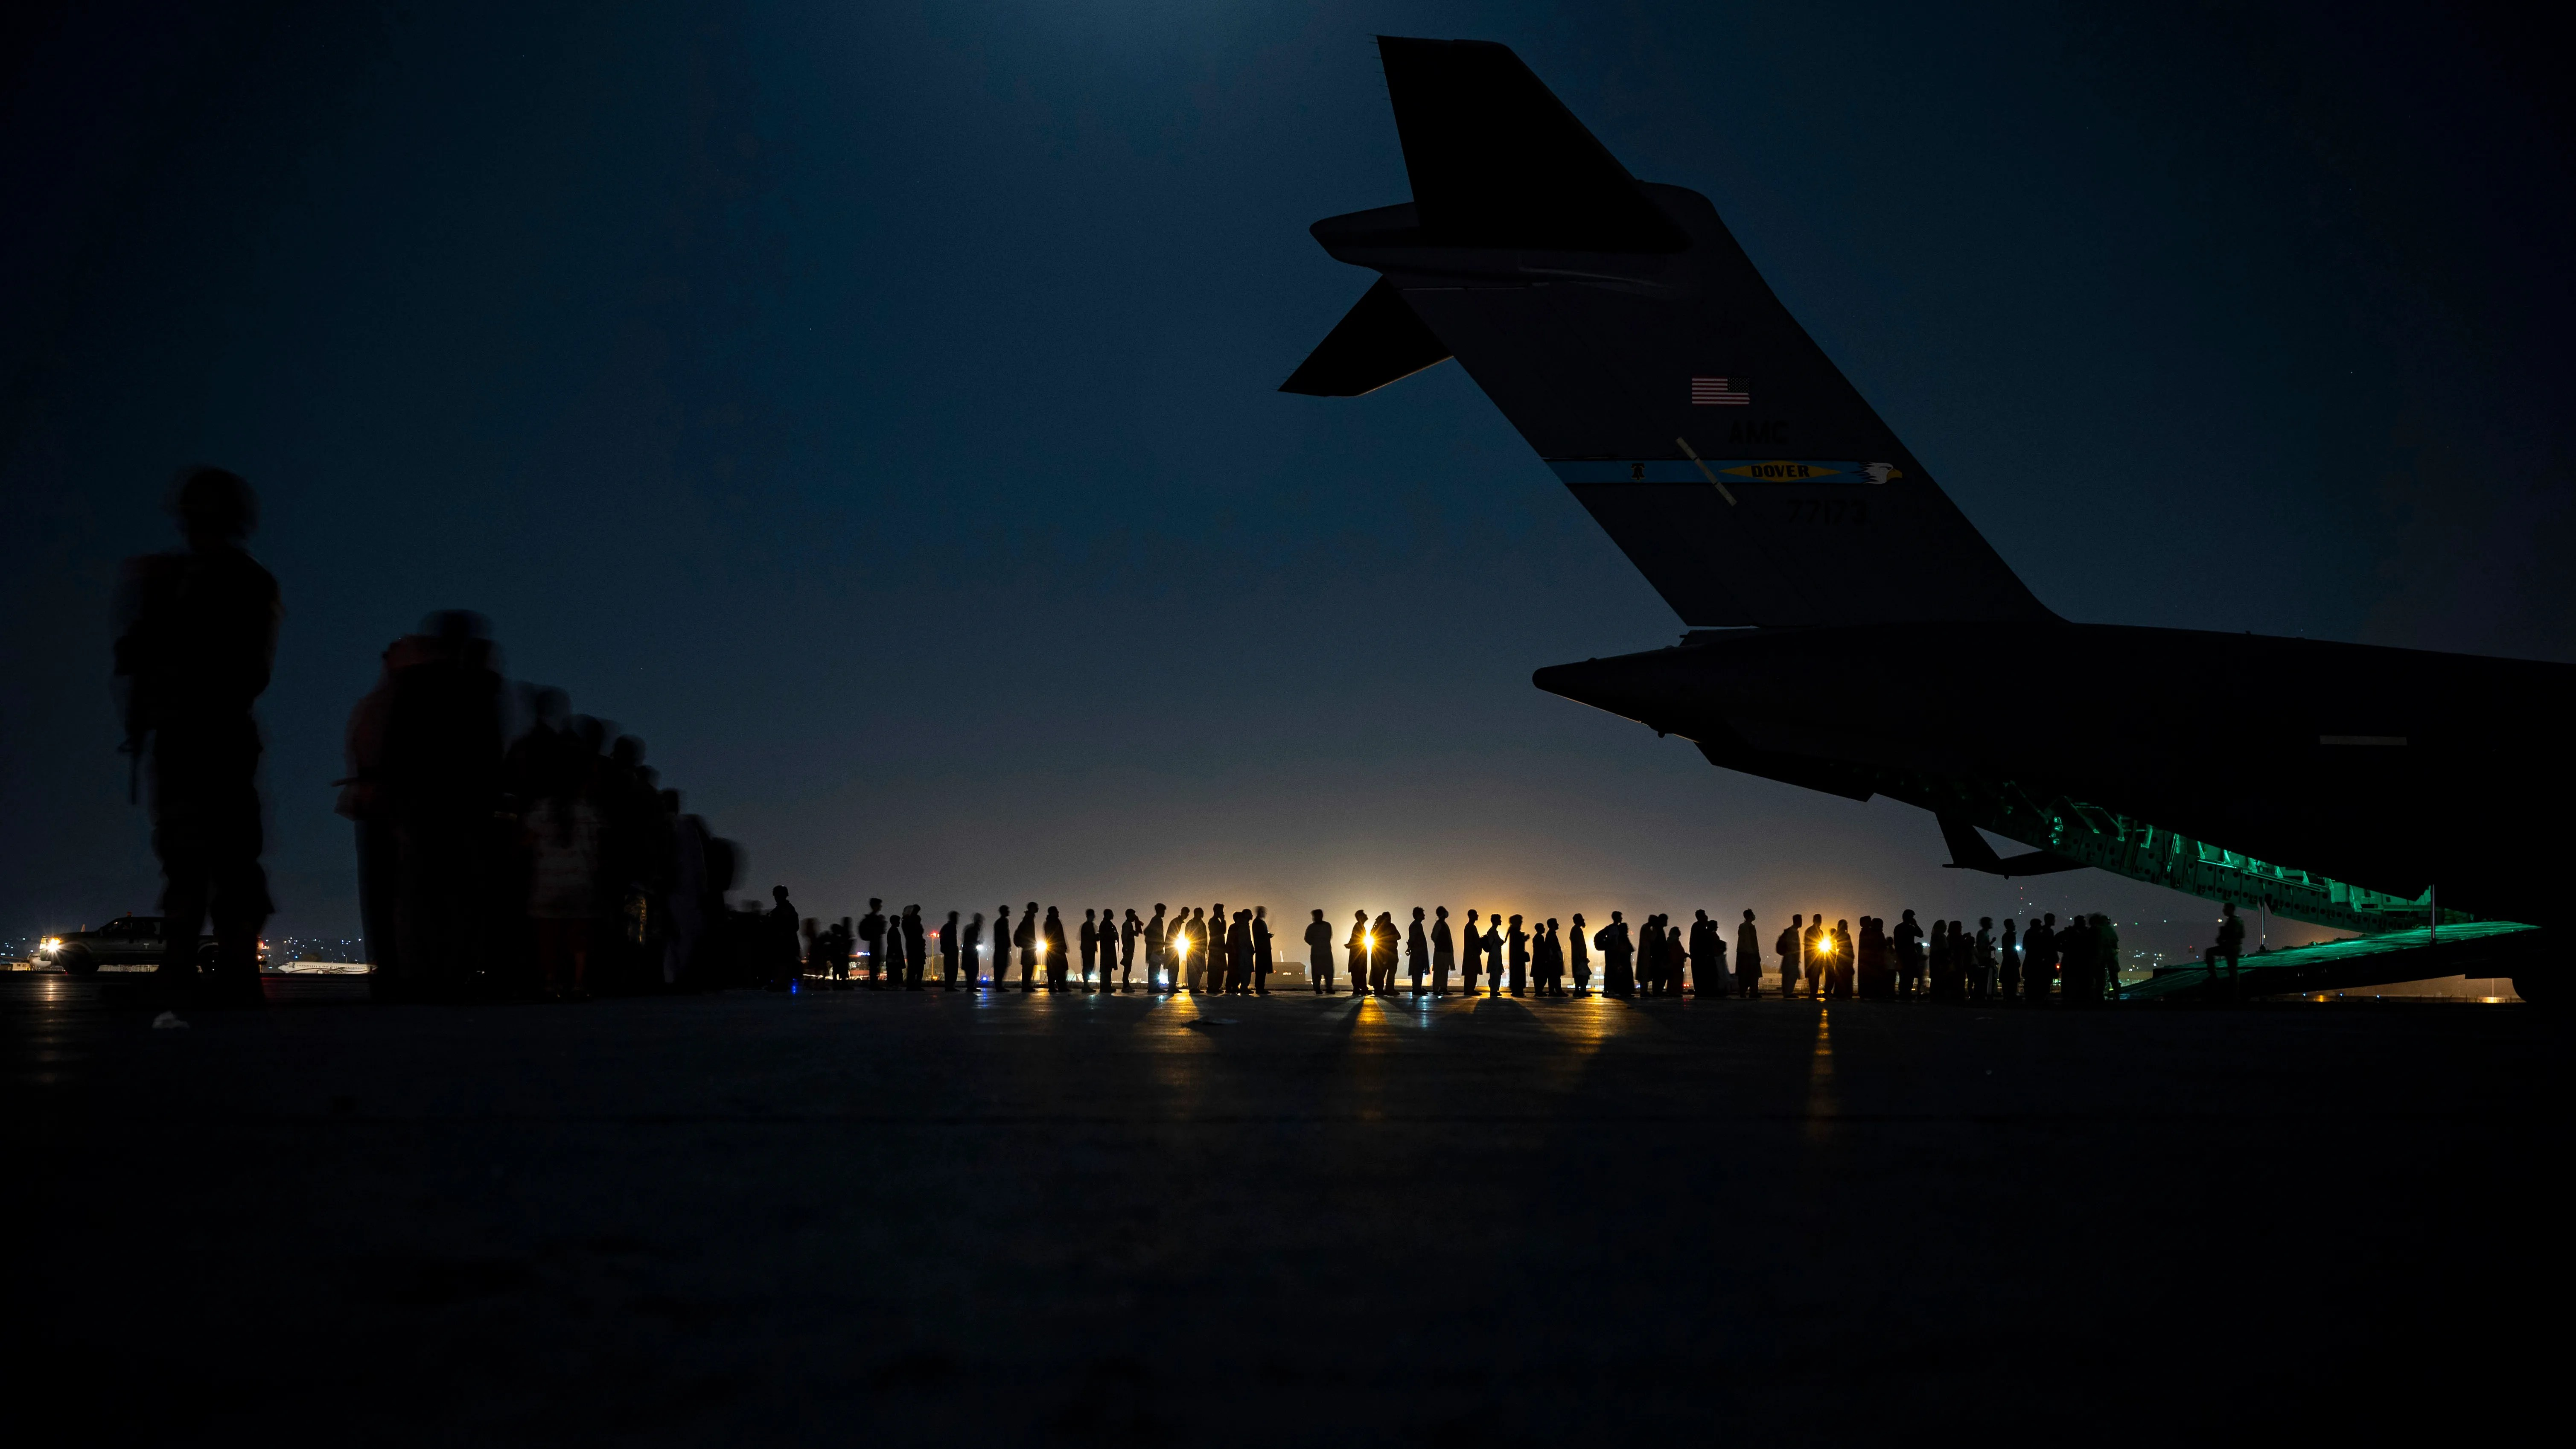 In this image provided by the U.S. Air Force and distributed by AP, U.S. Air Force aircrew, assigned to the 816th Expeditionary Airlift Squadron, prepare to load qualified evacuees aboard a U.S. Air Force C-17 Globemaster III aircraft in support of the Afghanistan evacuation at Hamid Karzai International Airport in Kabul, Afghanistan, on Aug. 21, 2021.